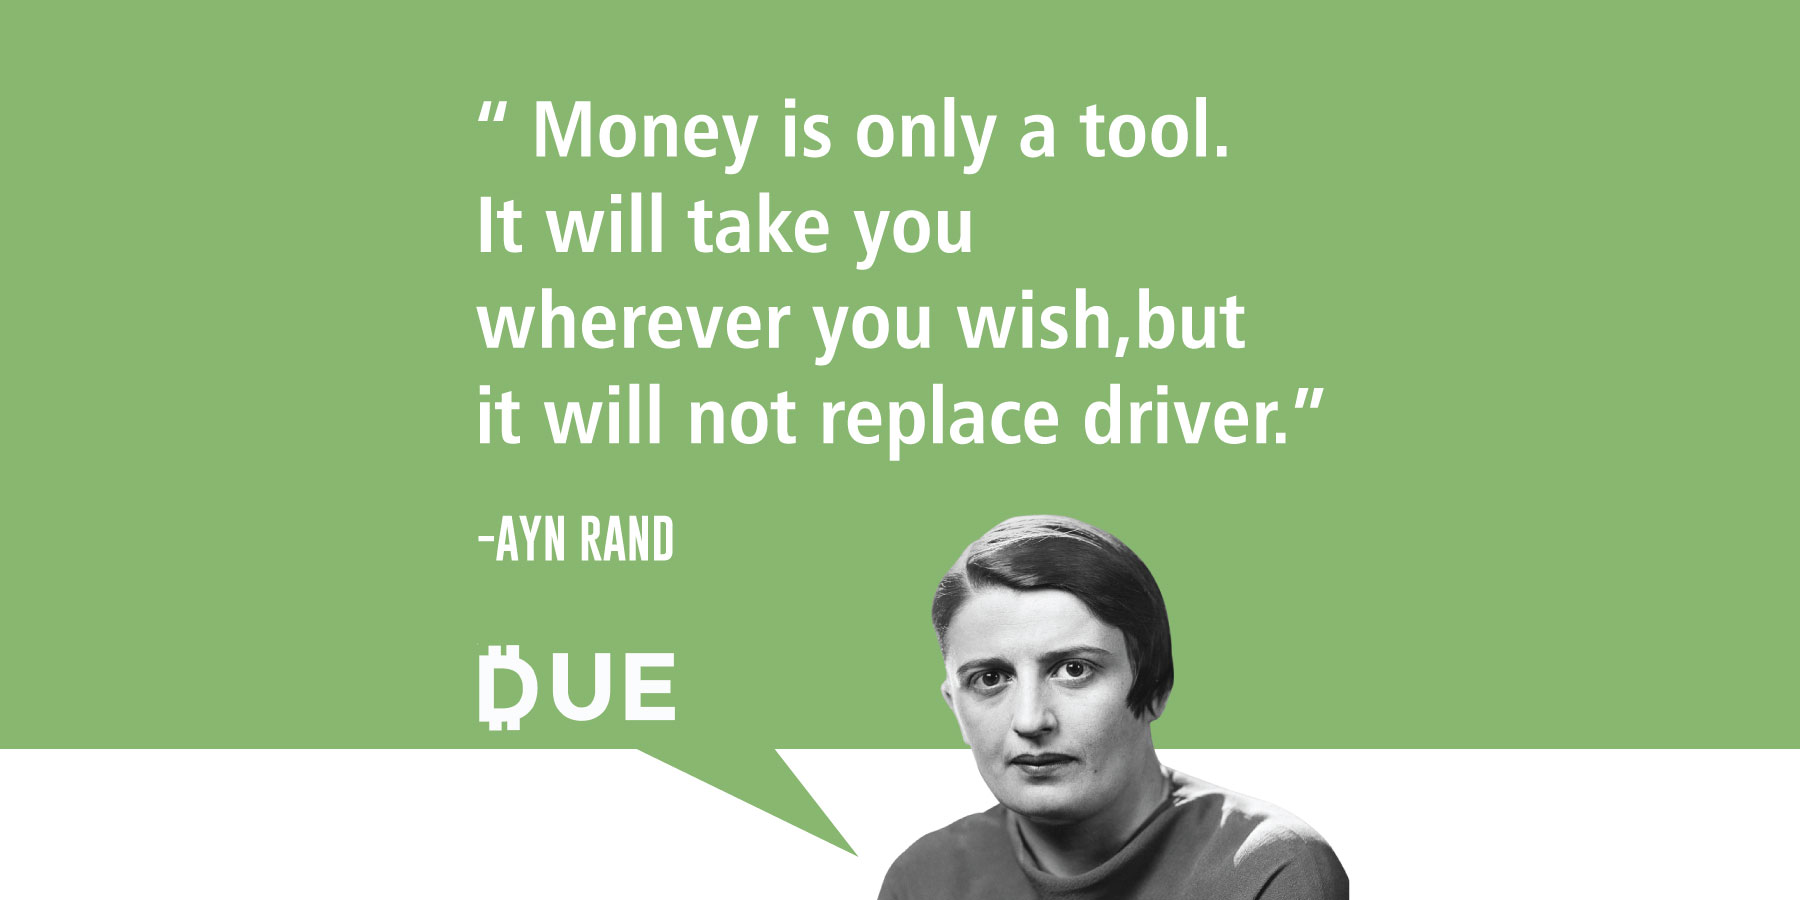 Ayn Rand Quote - Money is Only a Tool